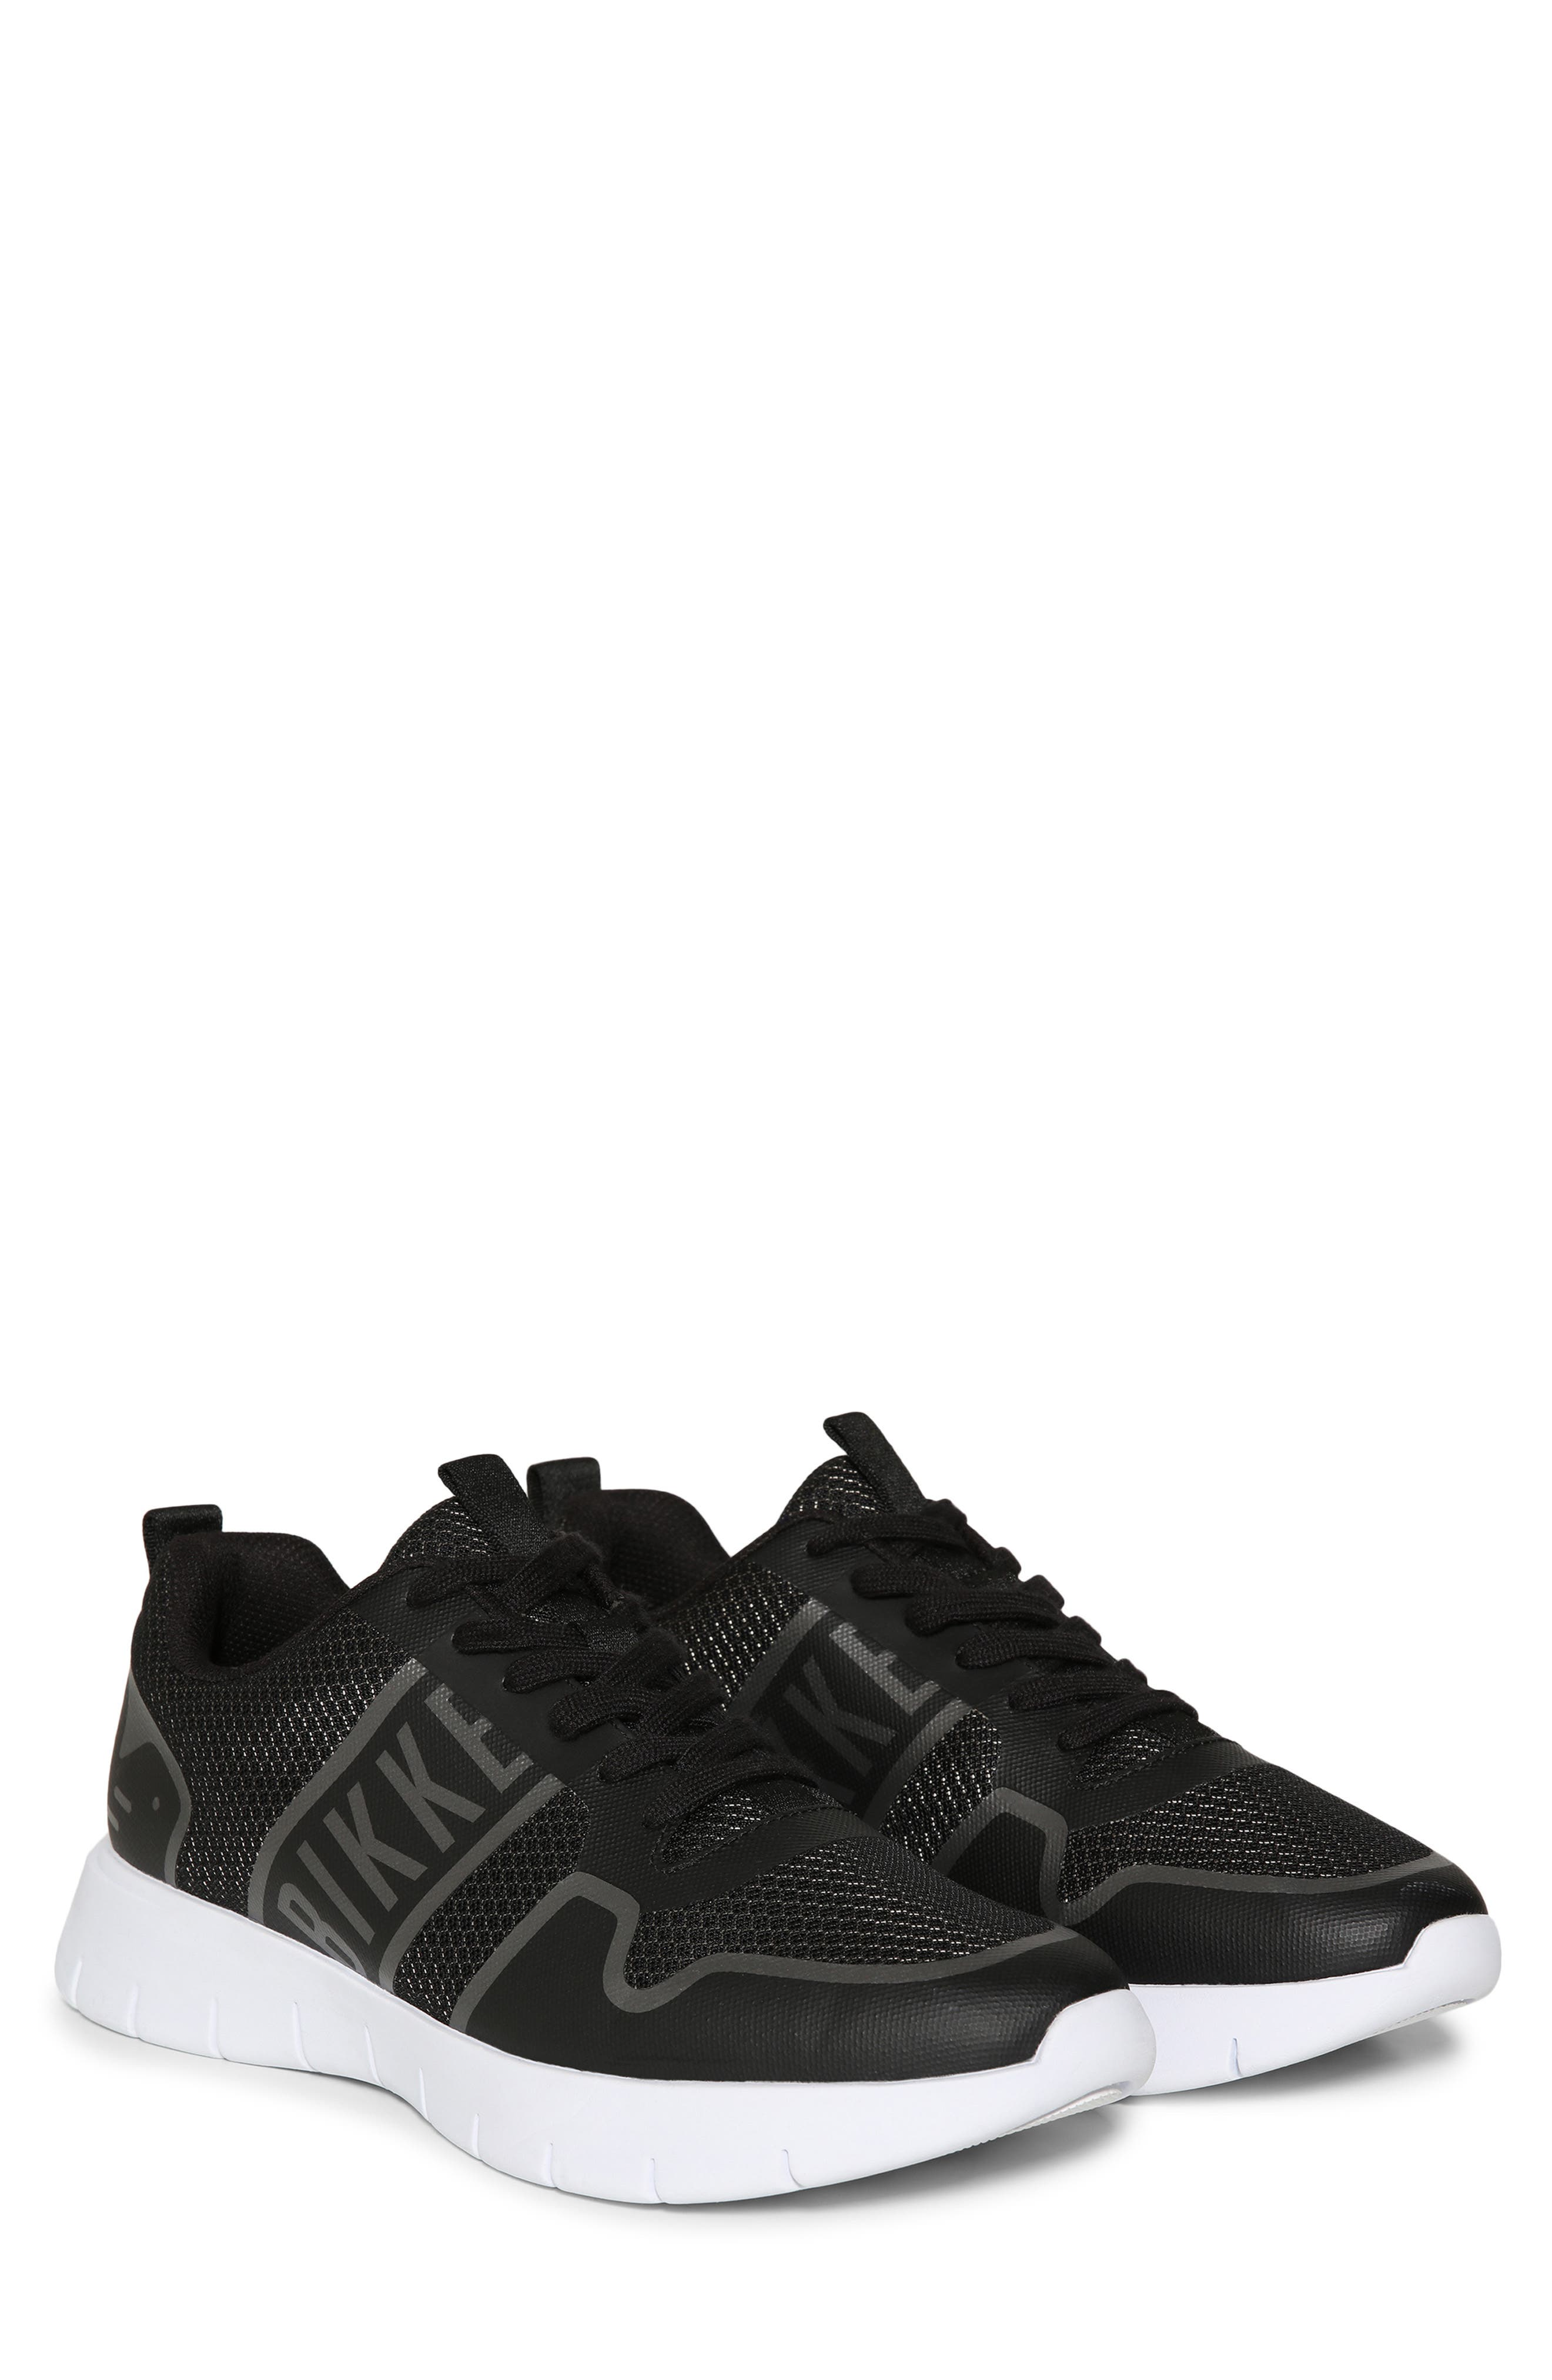 Frederic Knit Sneaker